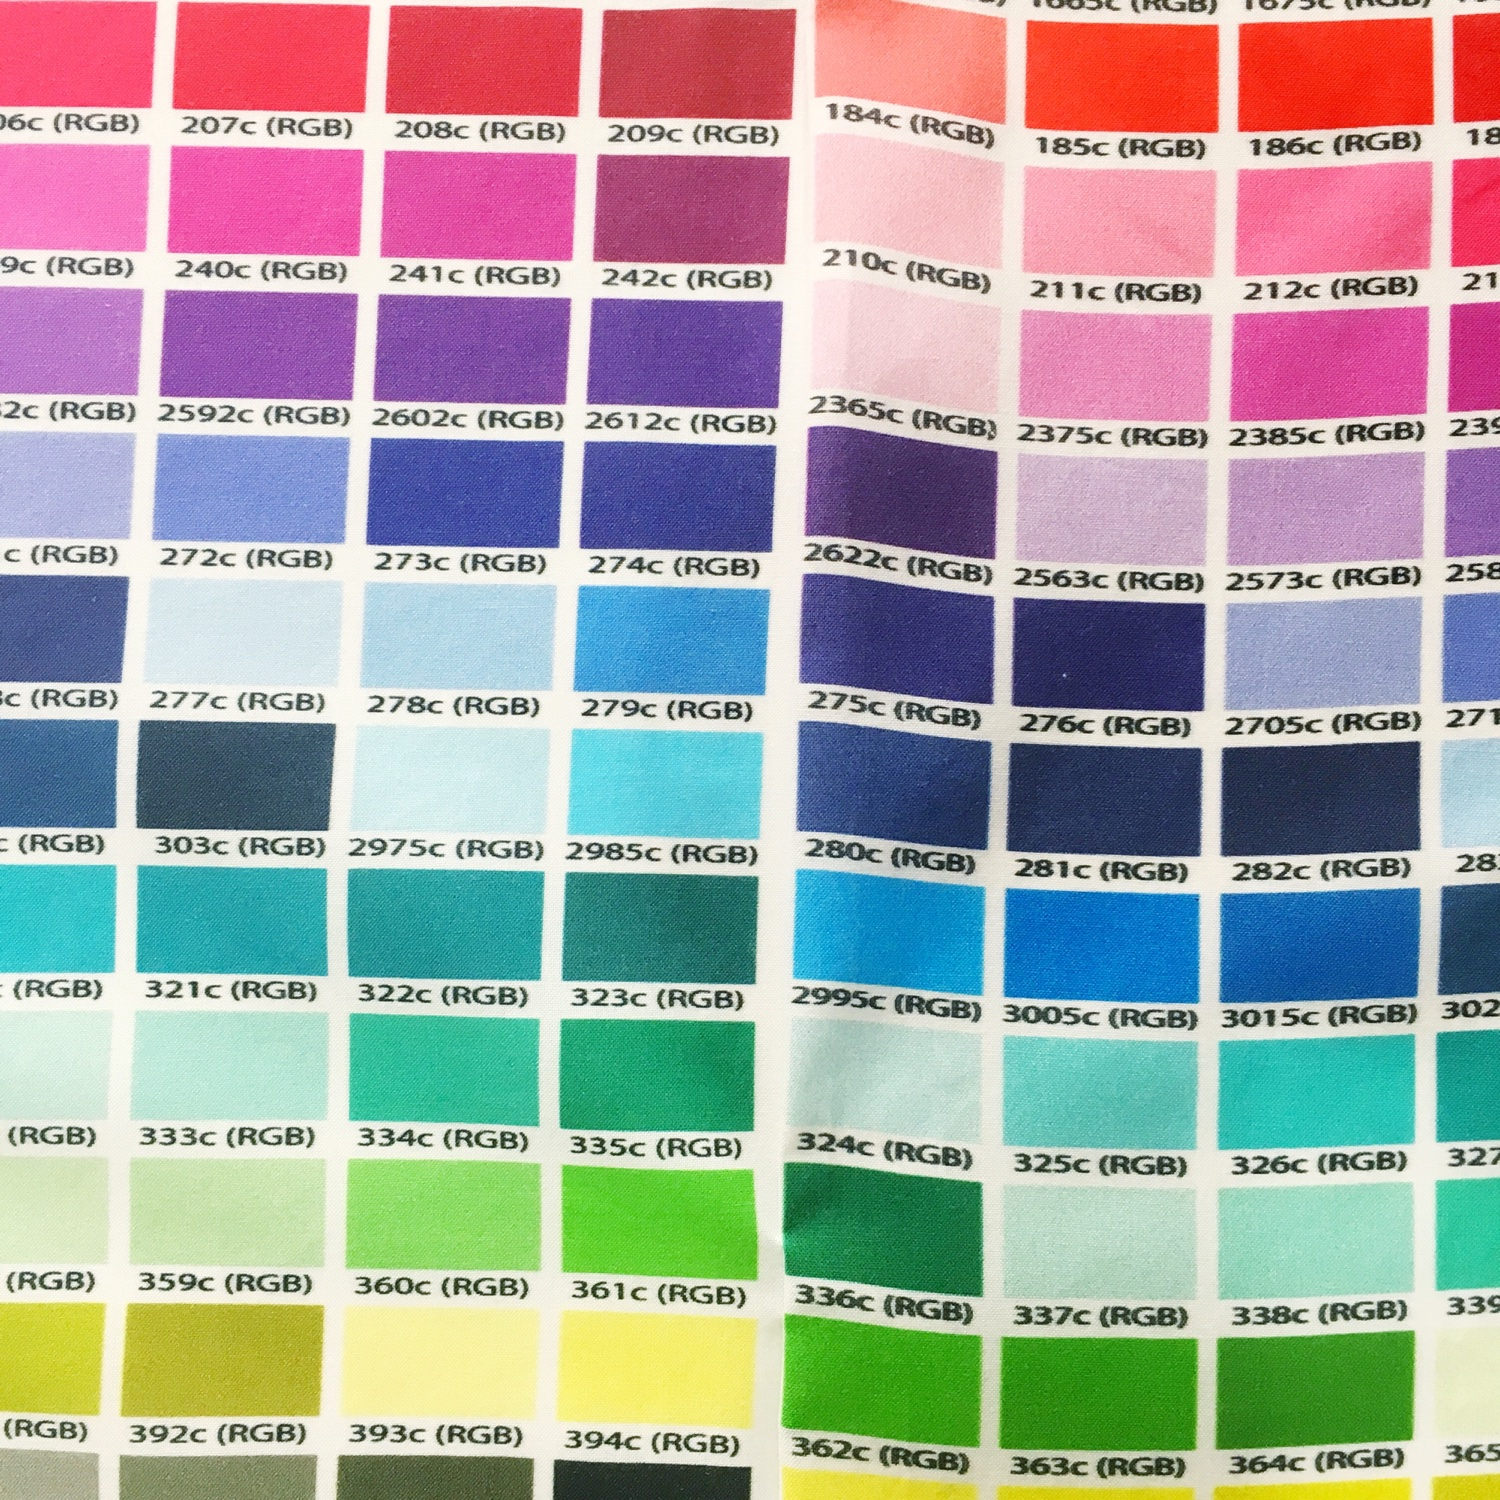 Pantone green color chart gallery free any chart examples pantone green color chart gallery free any chart examples pantone green color chart gallery free any nvjuhfo Image collections